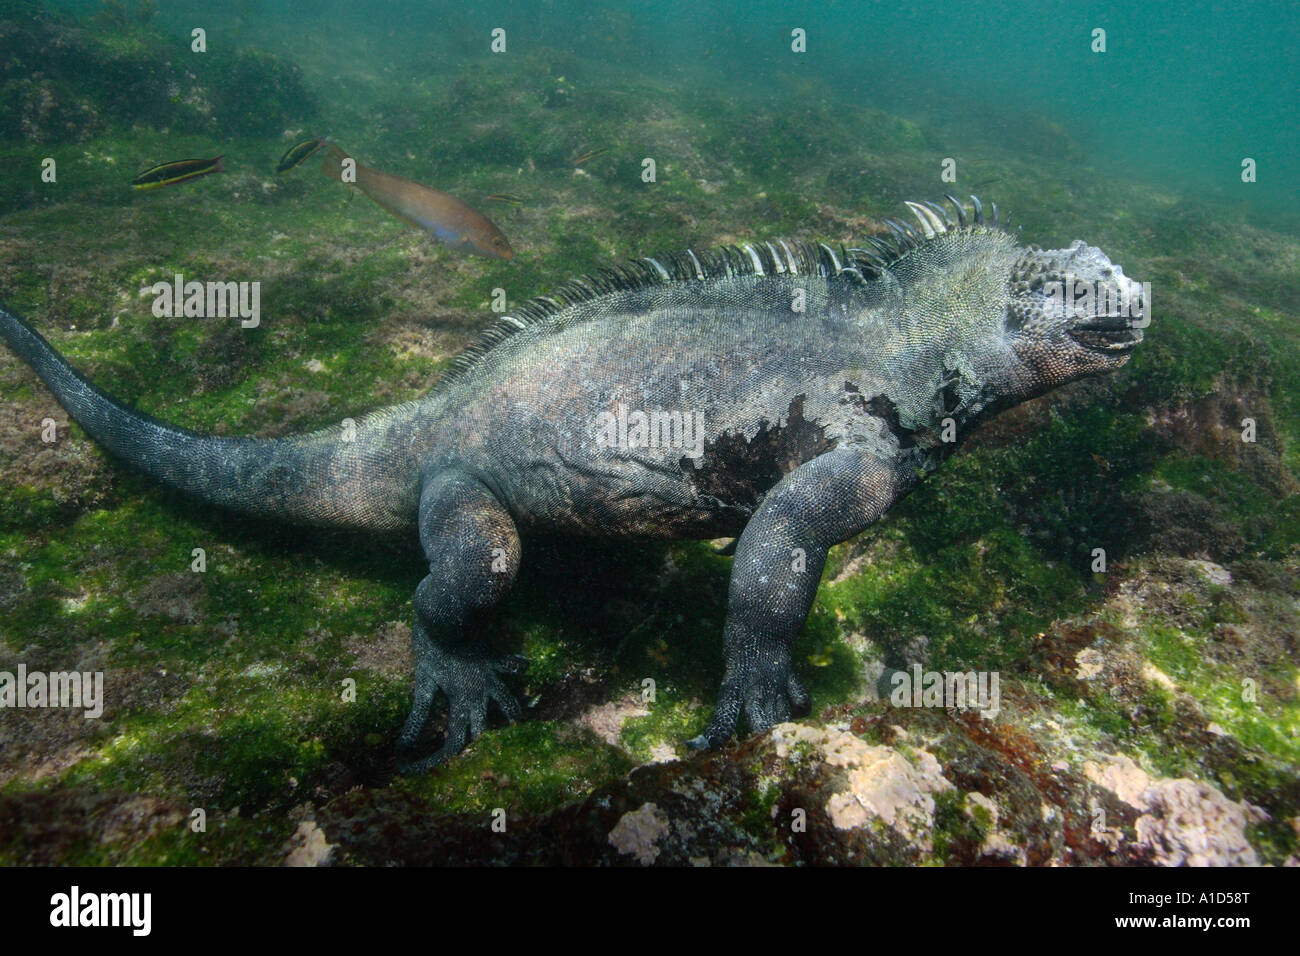 nu2381. Marine Iguana, Amblyrhynchus cristatus, underwater feeding on algae. Galapagos. Photo Copyright Brandon - Stock Image